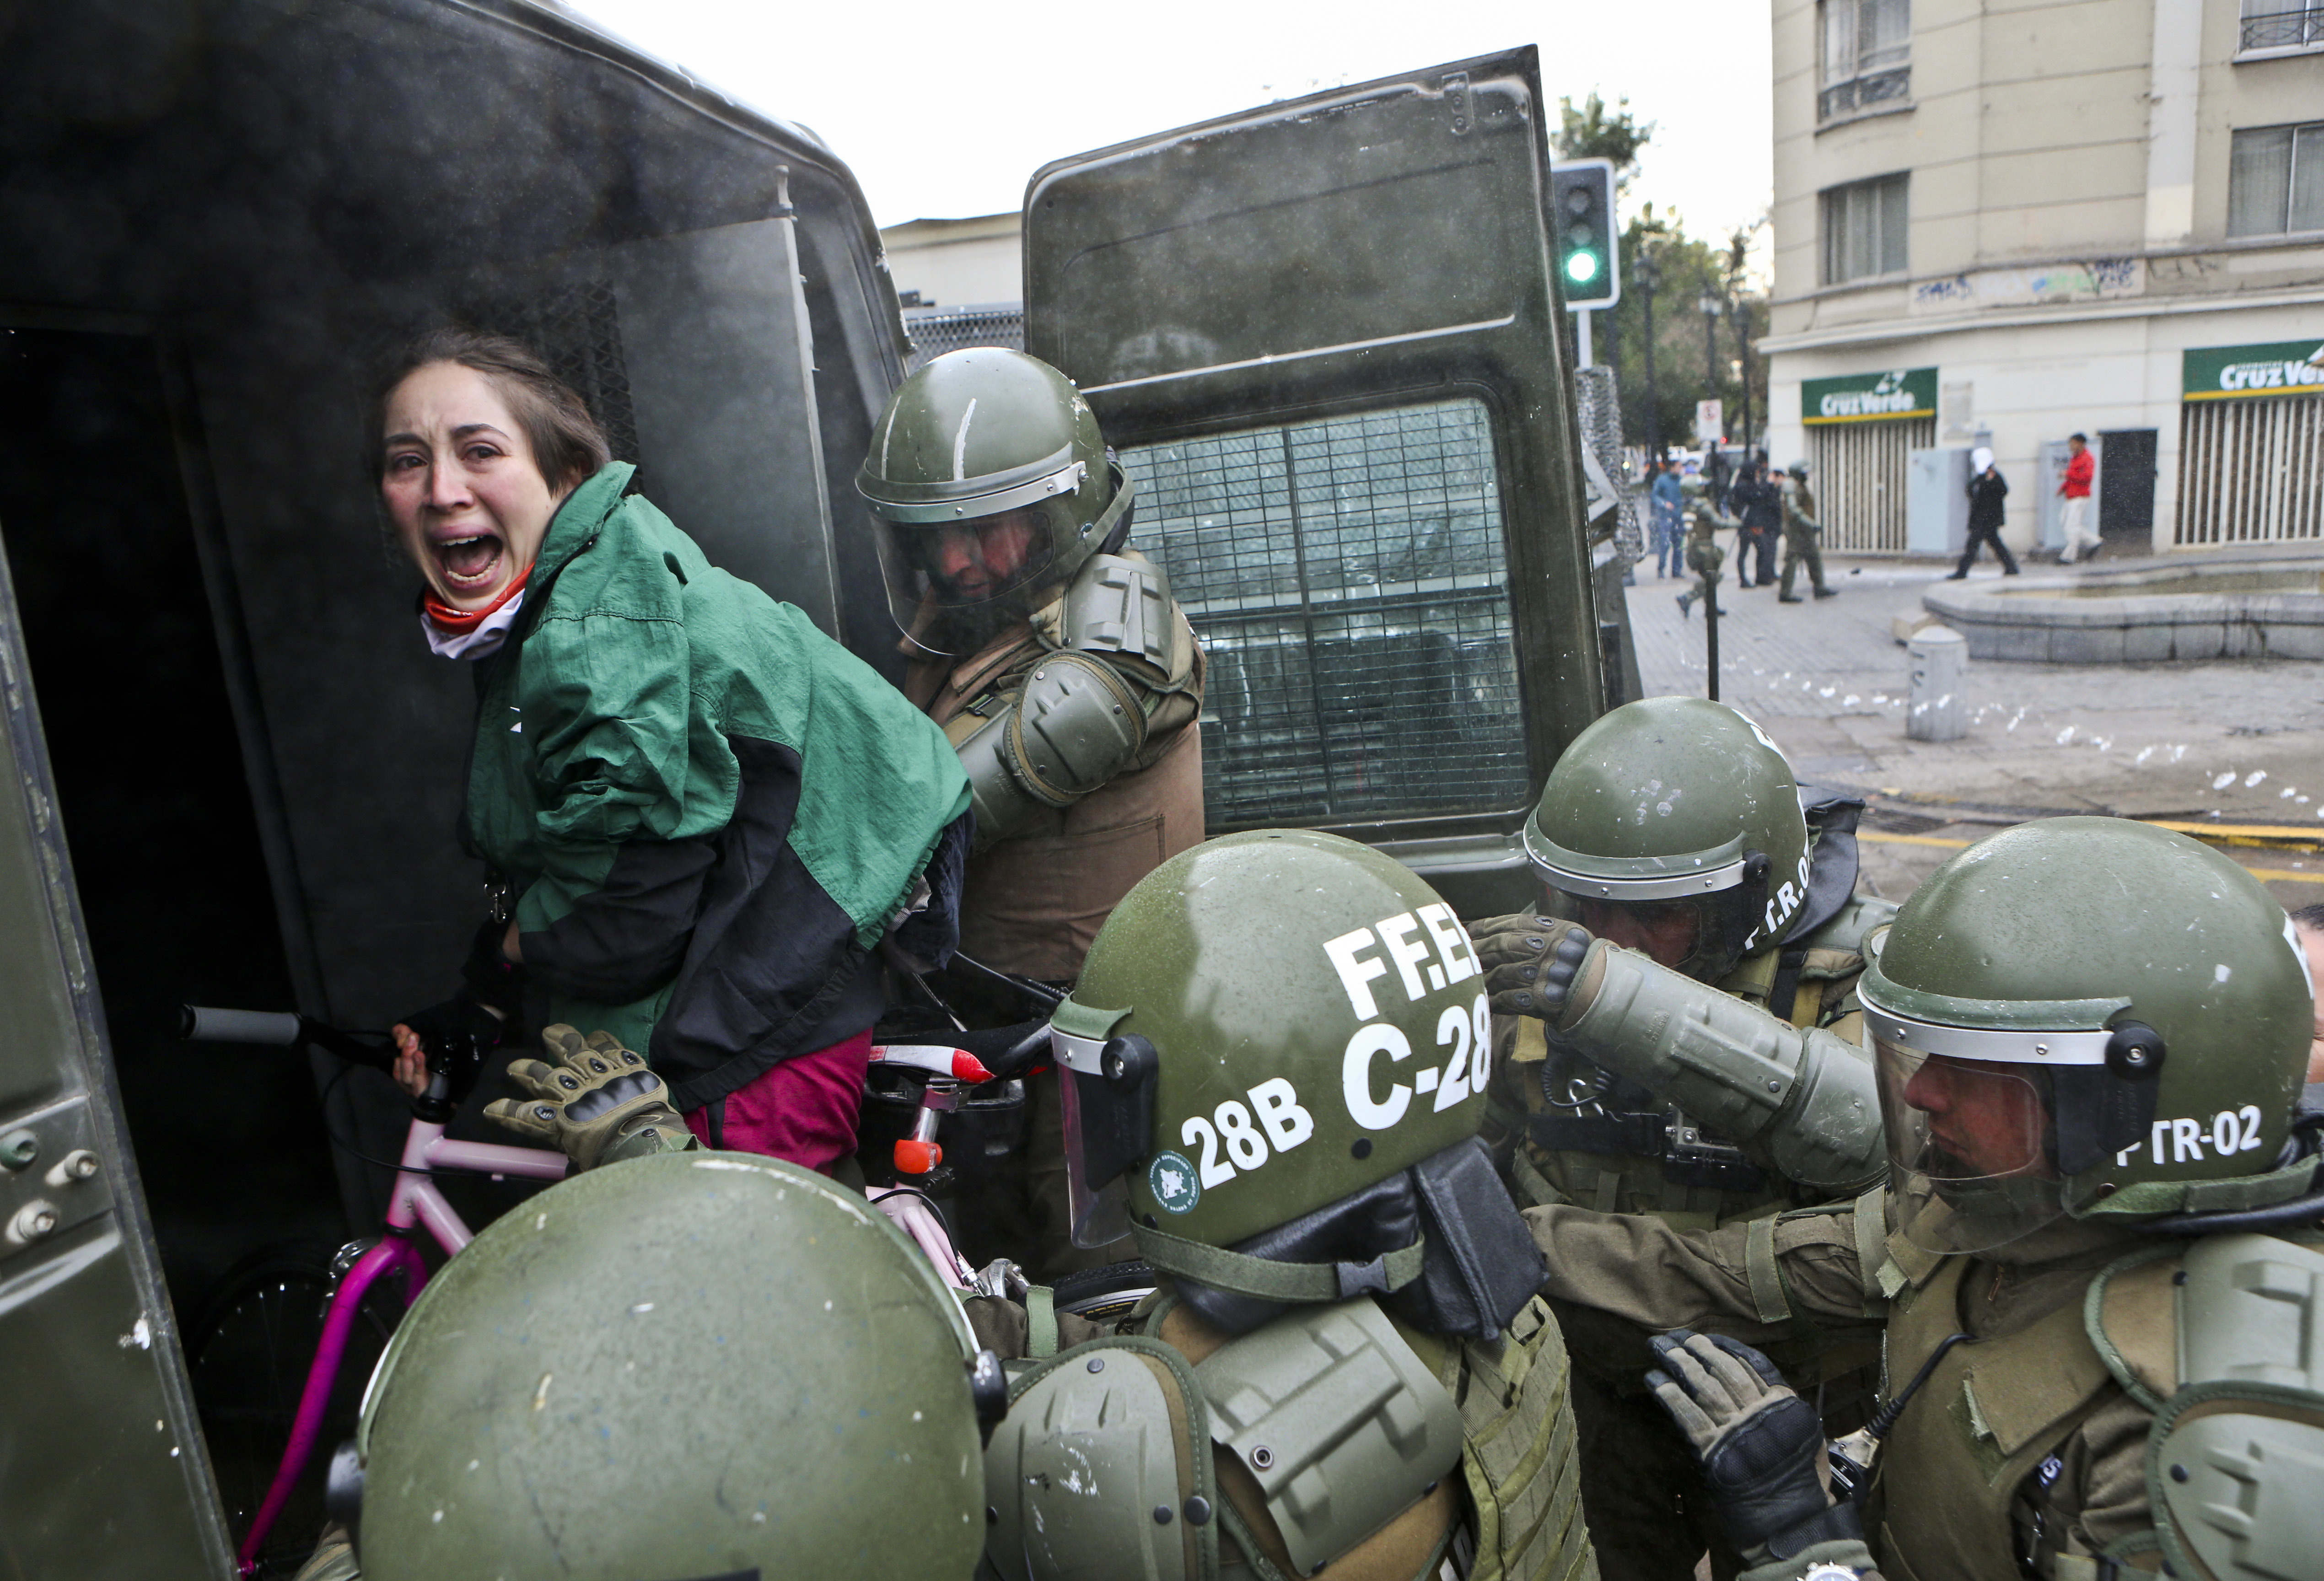 A woman, while on her bicycle, is lifted and placed by police into a paddy wagon during a protest march demanding the government overhaul the education funding system that would include canceling their student loan debt, in Santiago, Chile, Wednesday, June 21, 2017. (AP Photo/Esteban Felix)